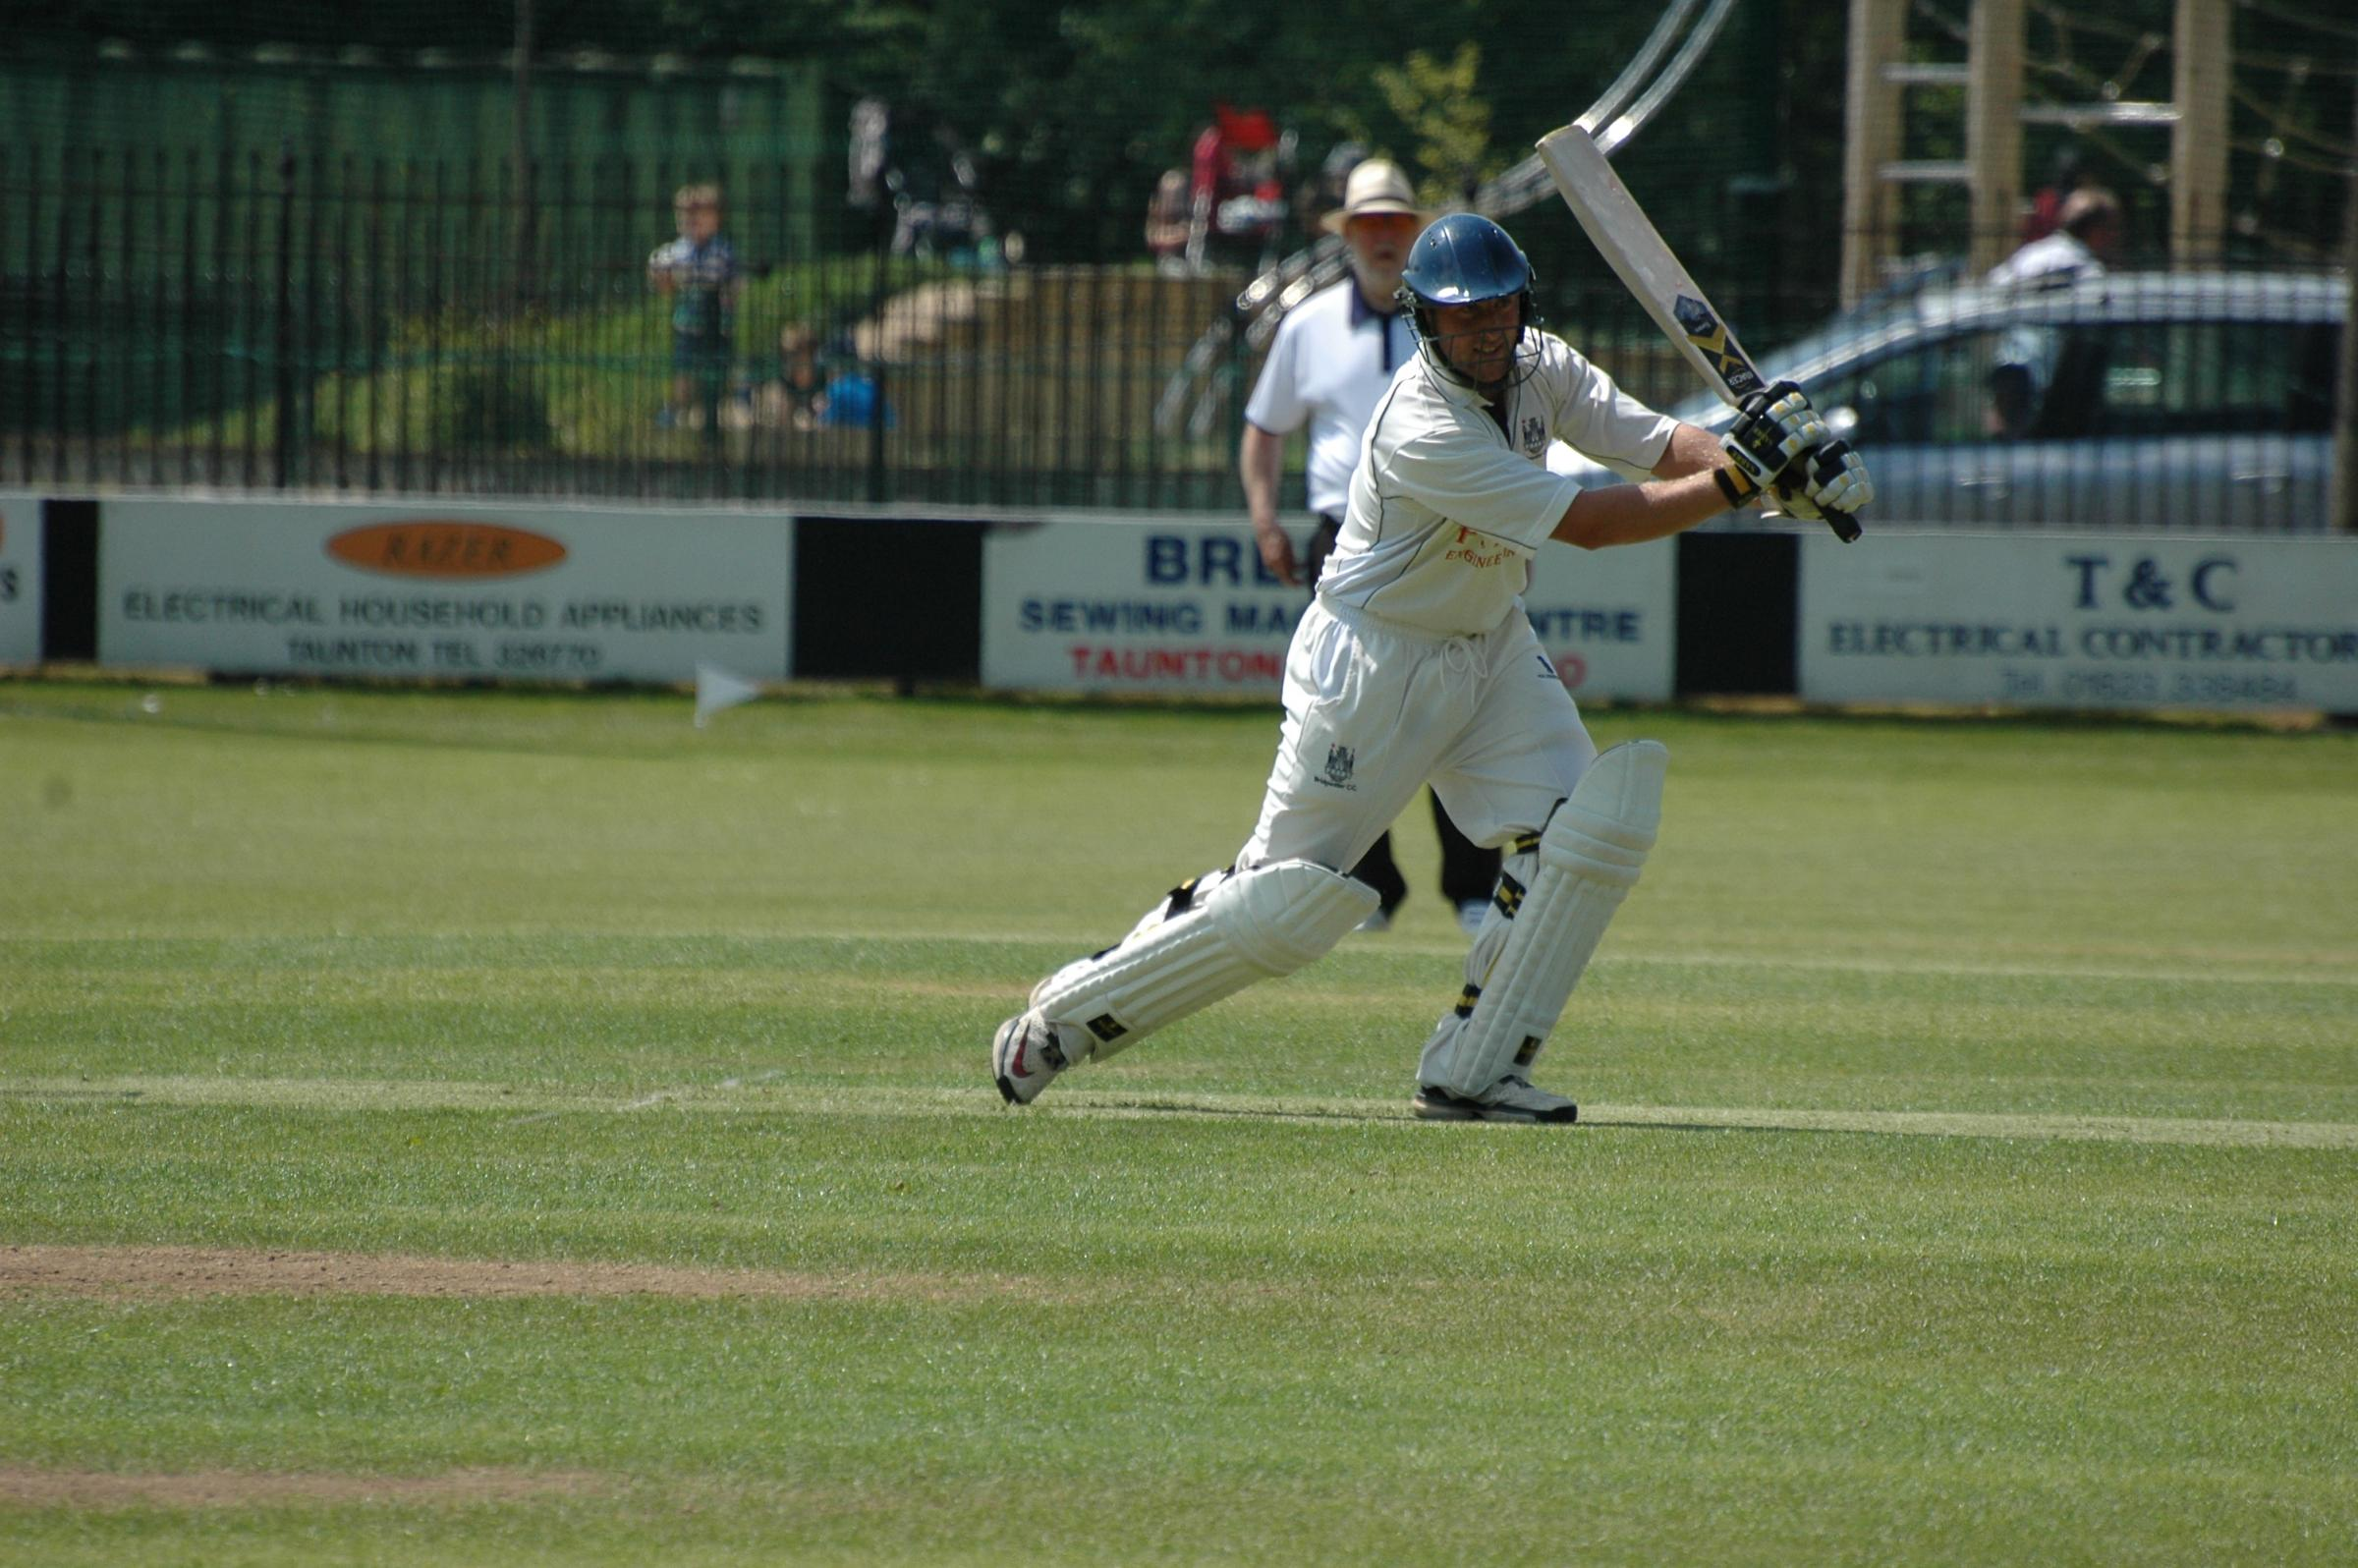 Vickery powers Bridgwater to Deane destruction